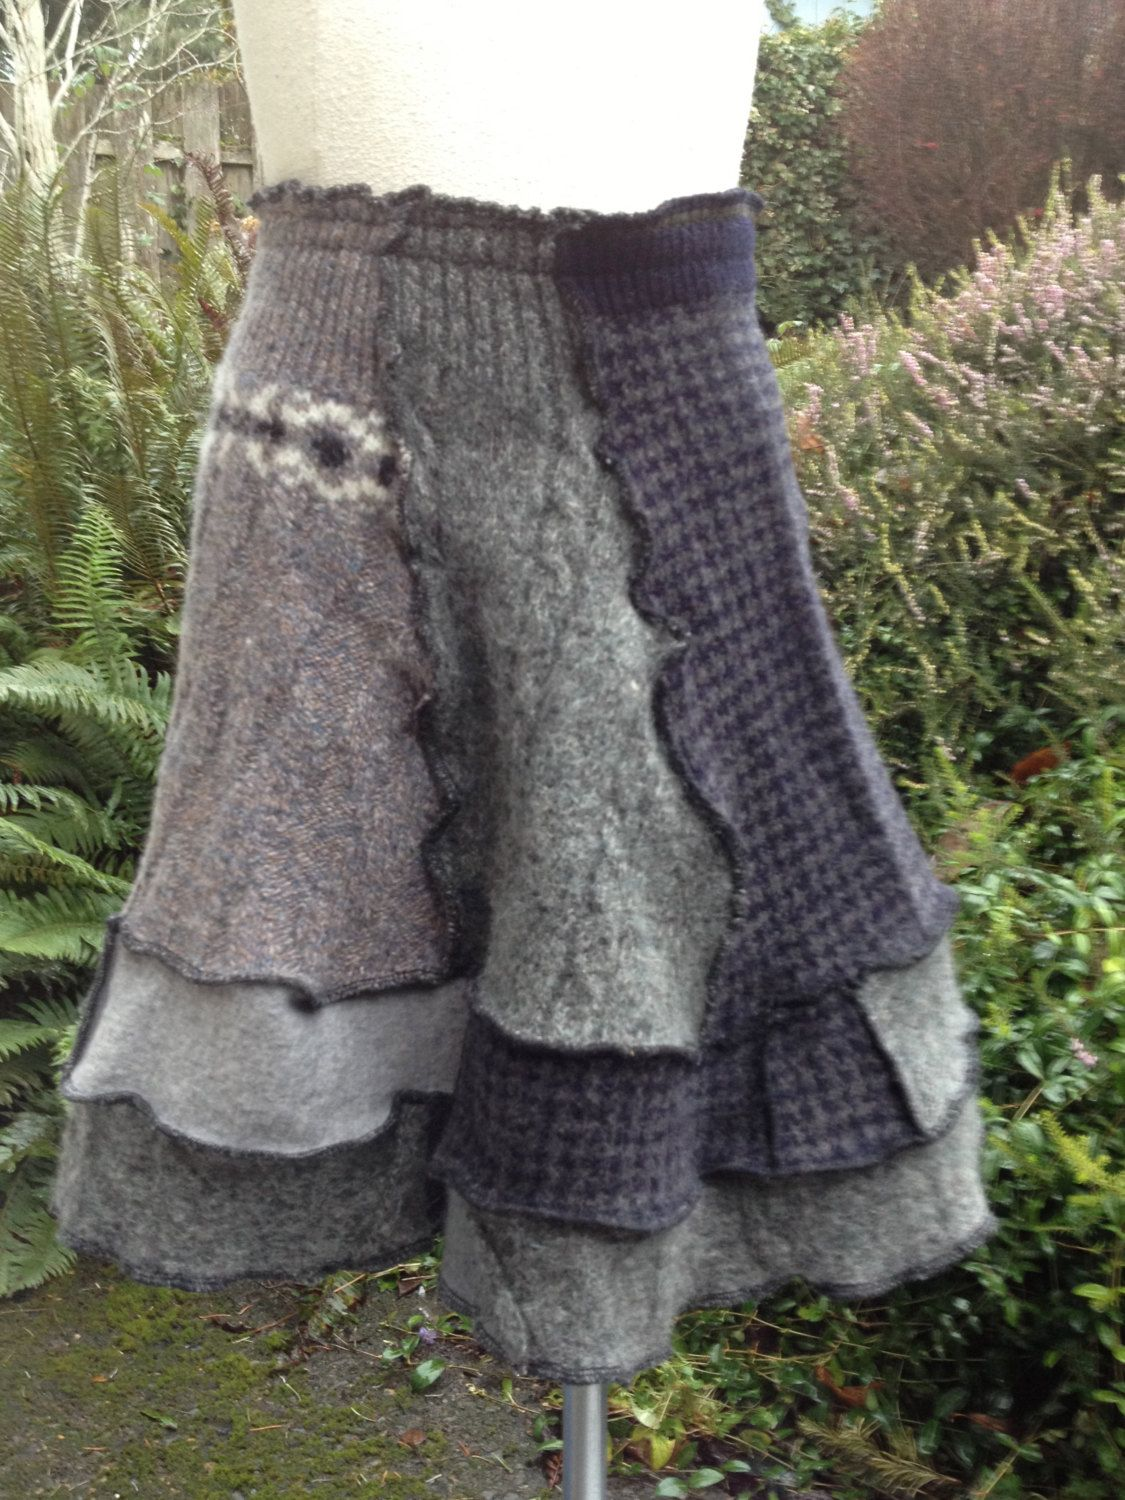 Villapaitahame upcycling pinterest jupes recyclage et v tements - Idees recyclage vetements ...